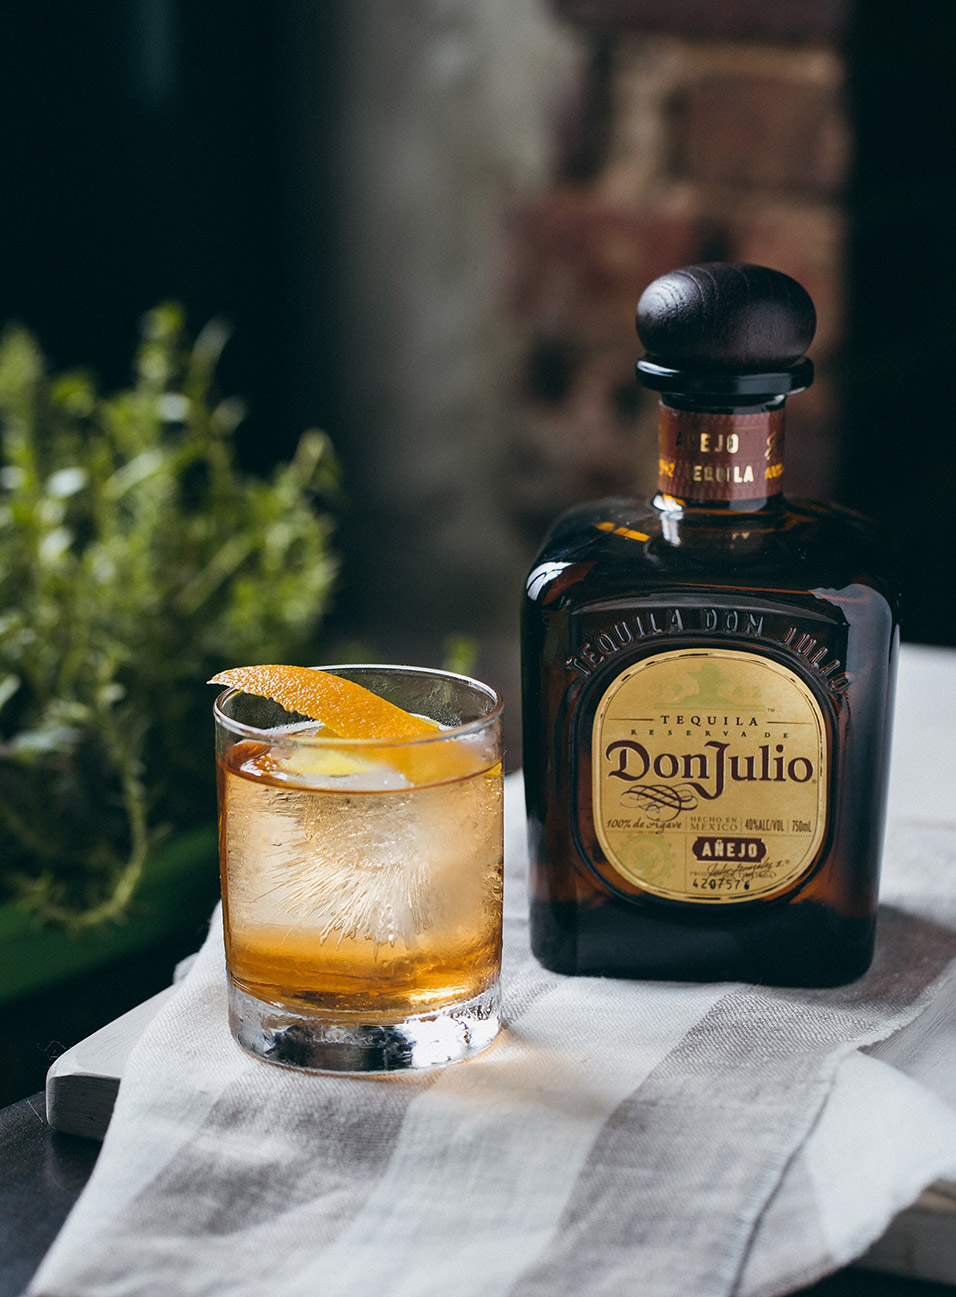 Old Fashioned made with Don Julio Añejo Tequila